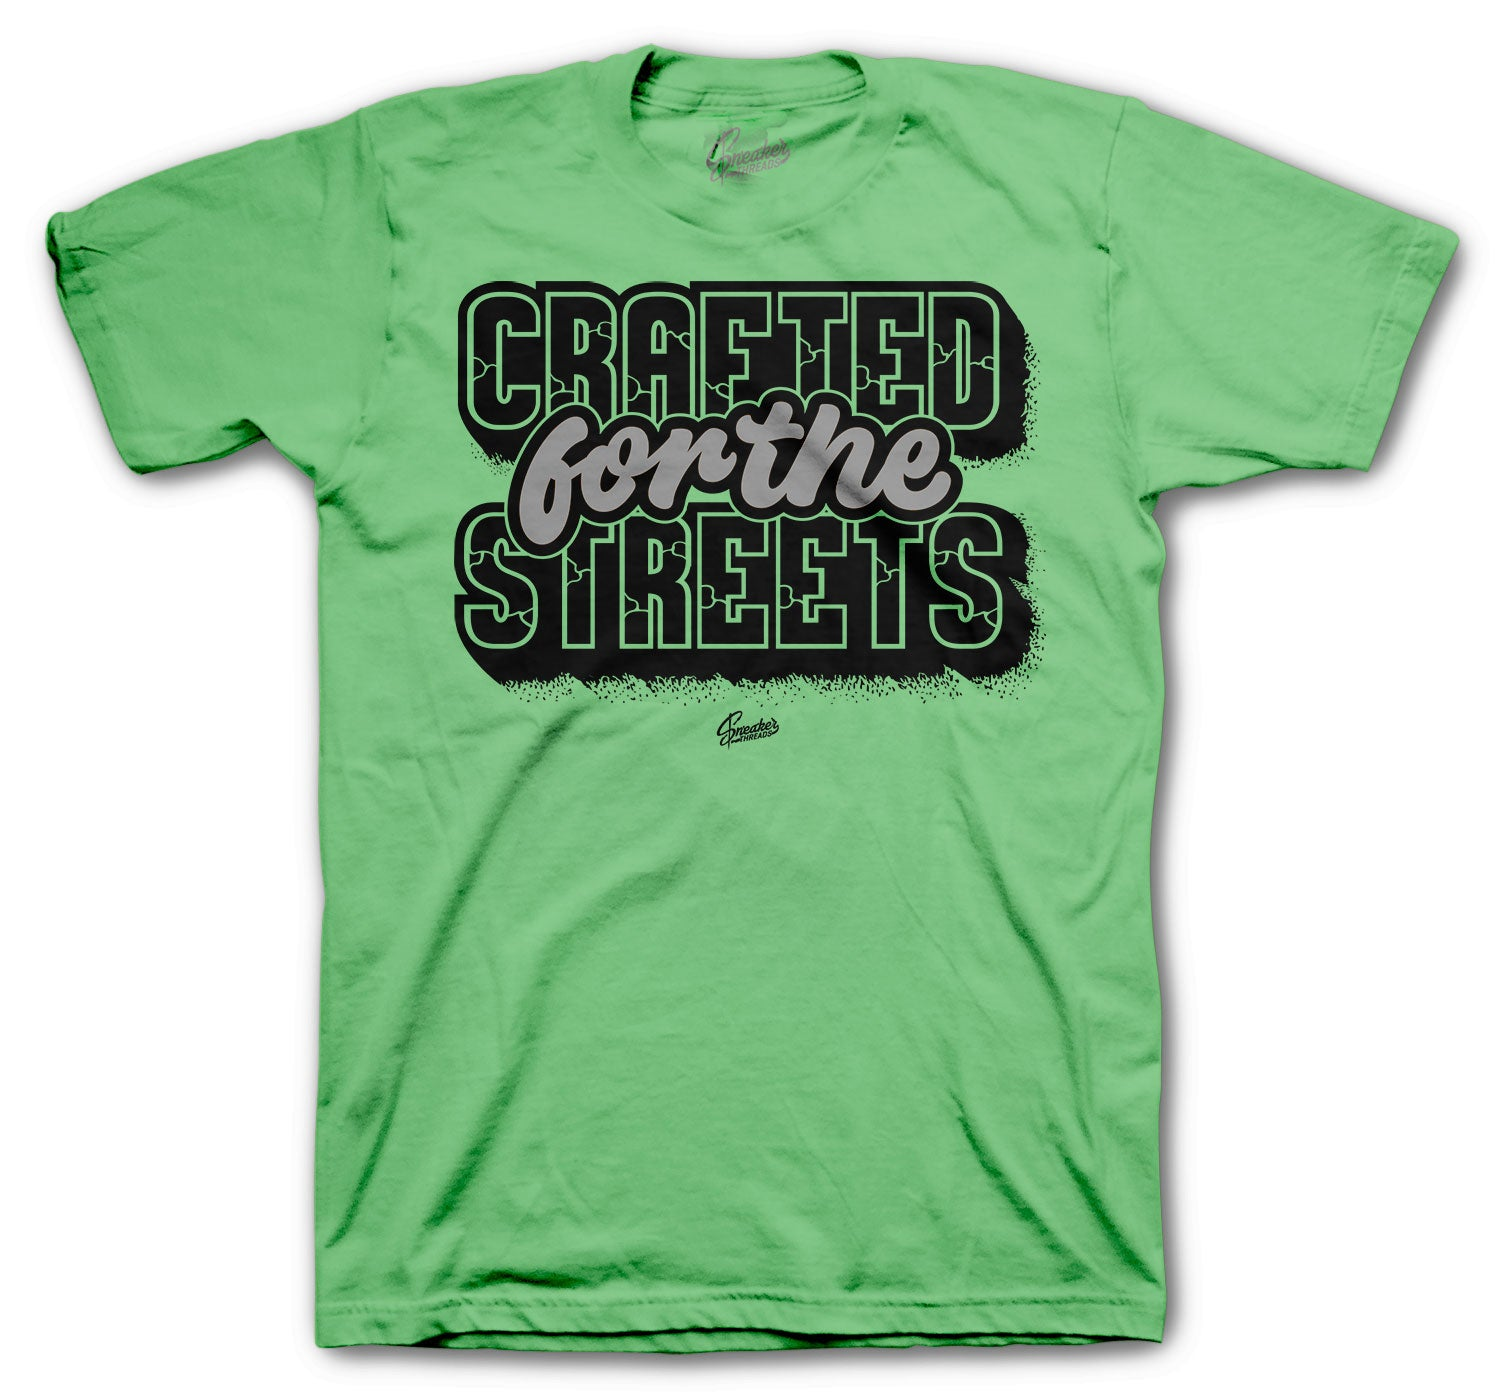 Jordan 1 Zen Green Crafted Shirt